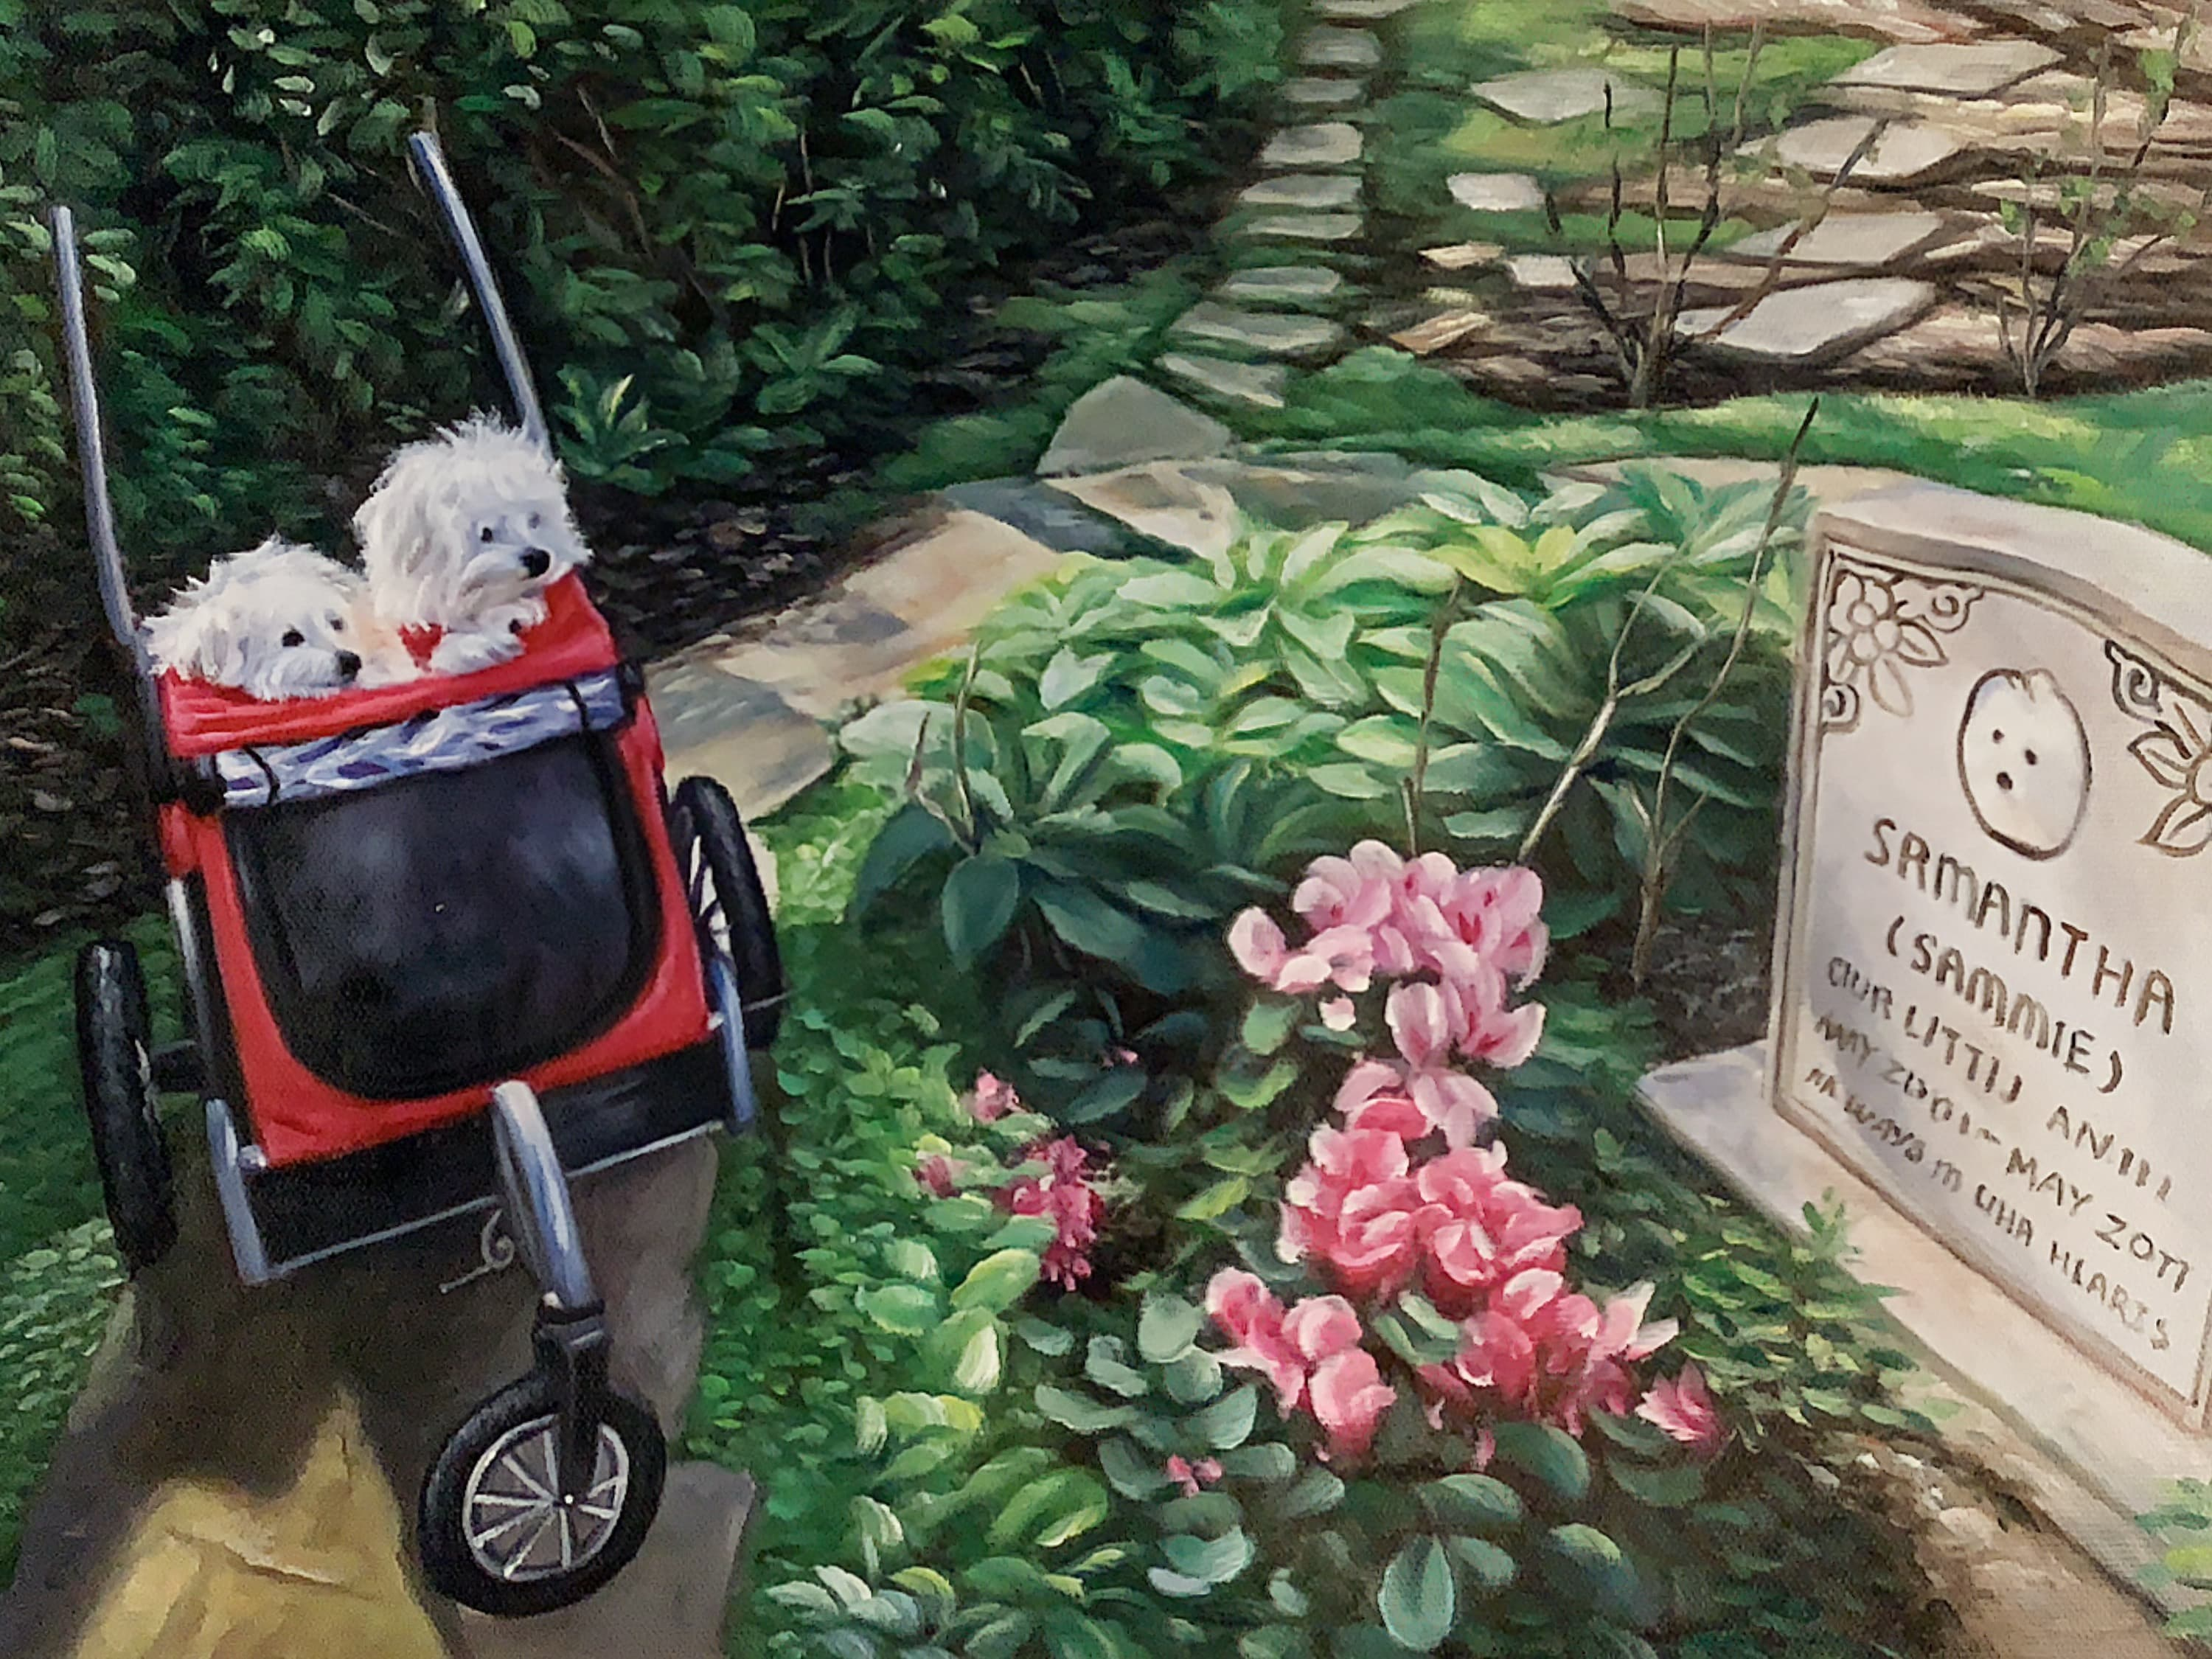 Two dogs in a stroller looking at a gravestone, as an oil painting